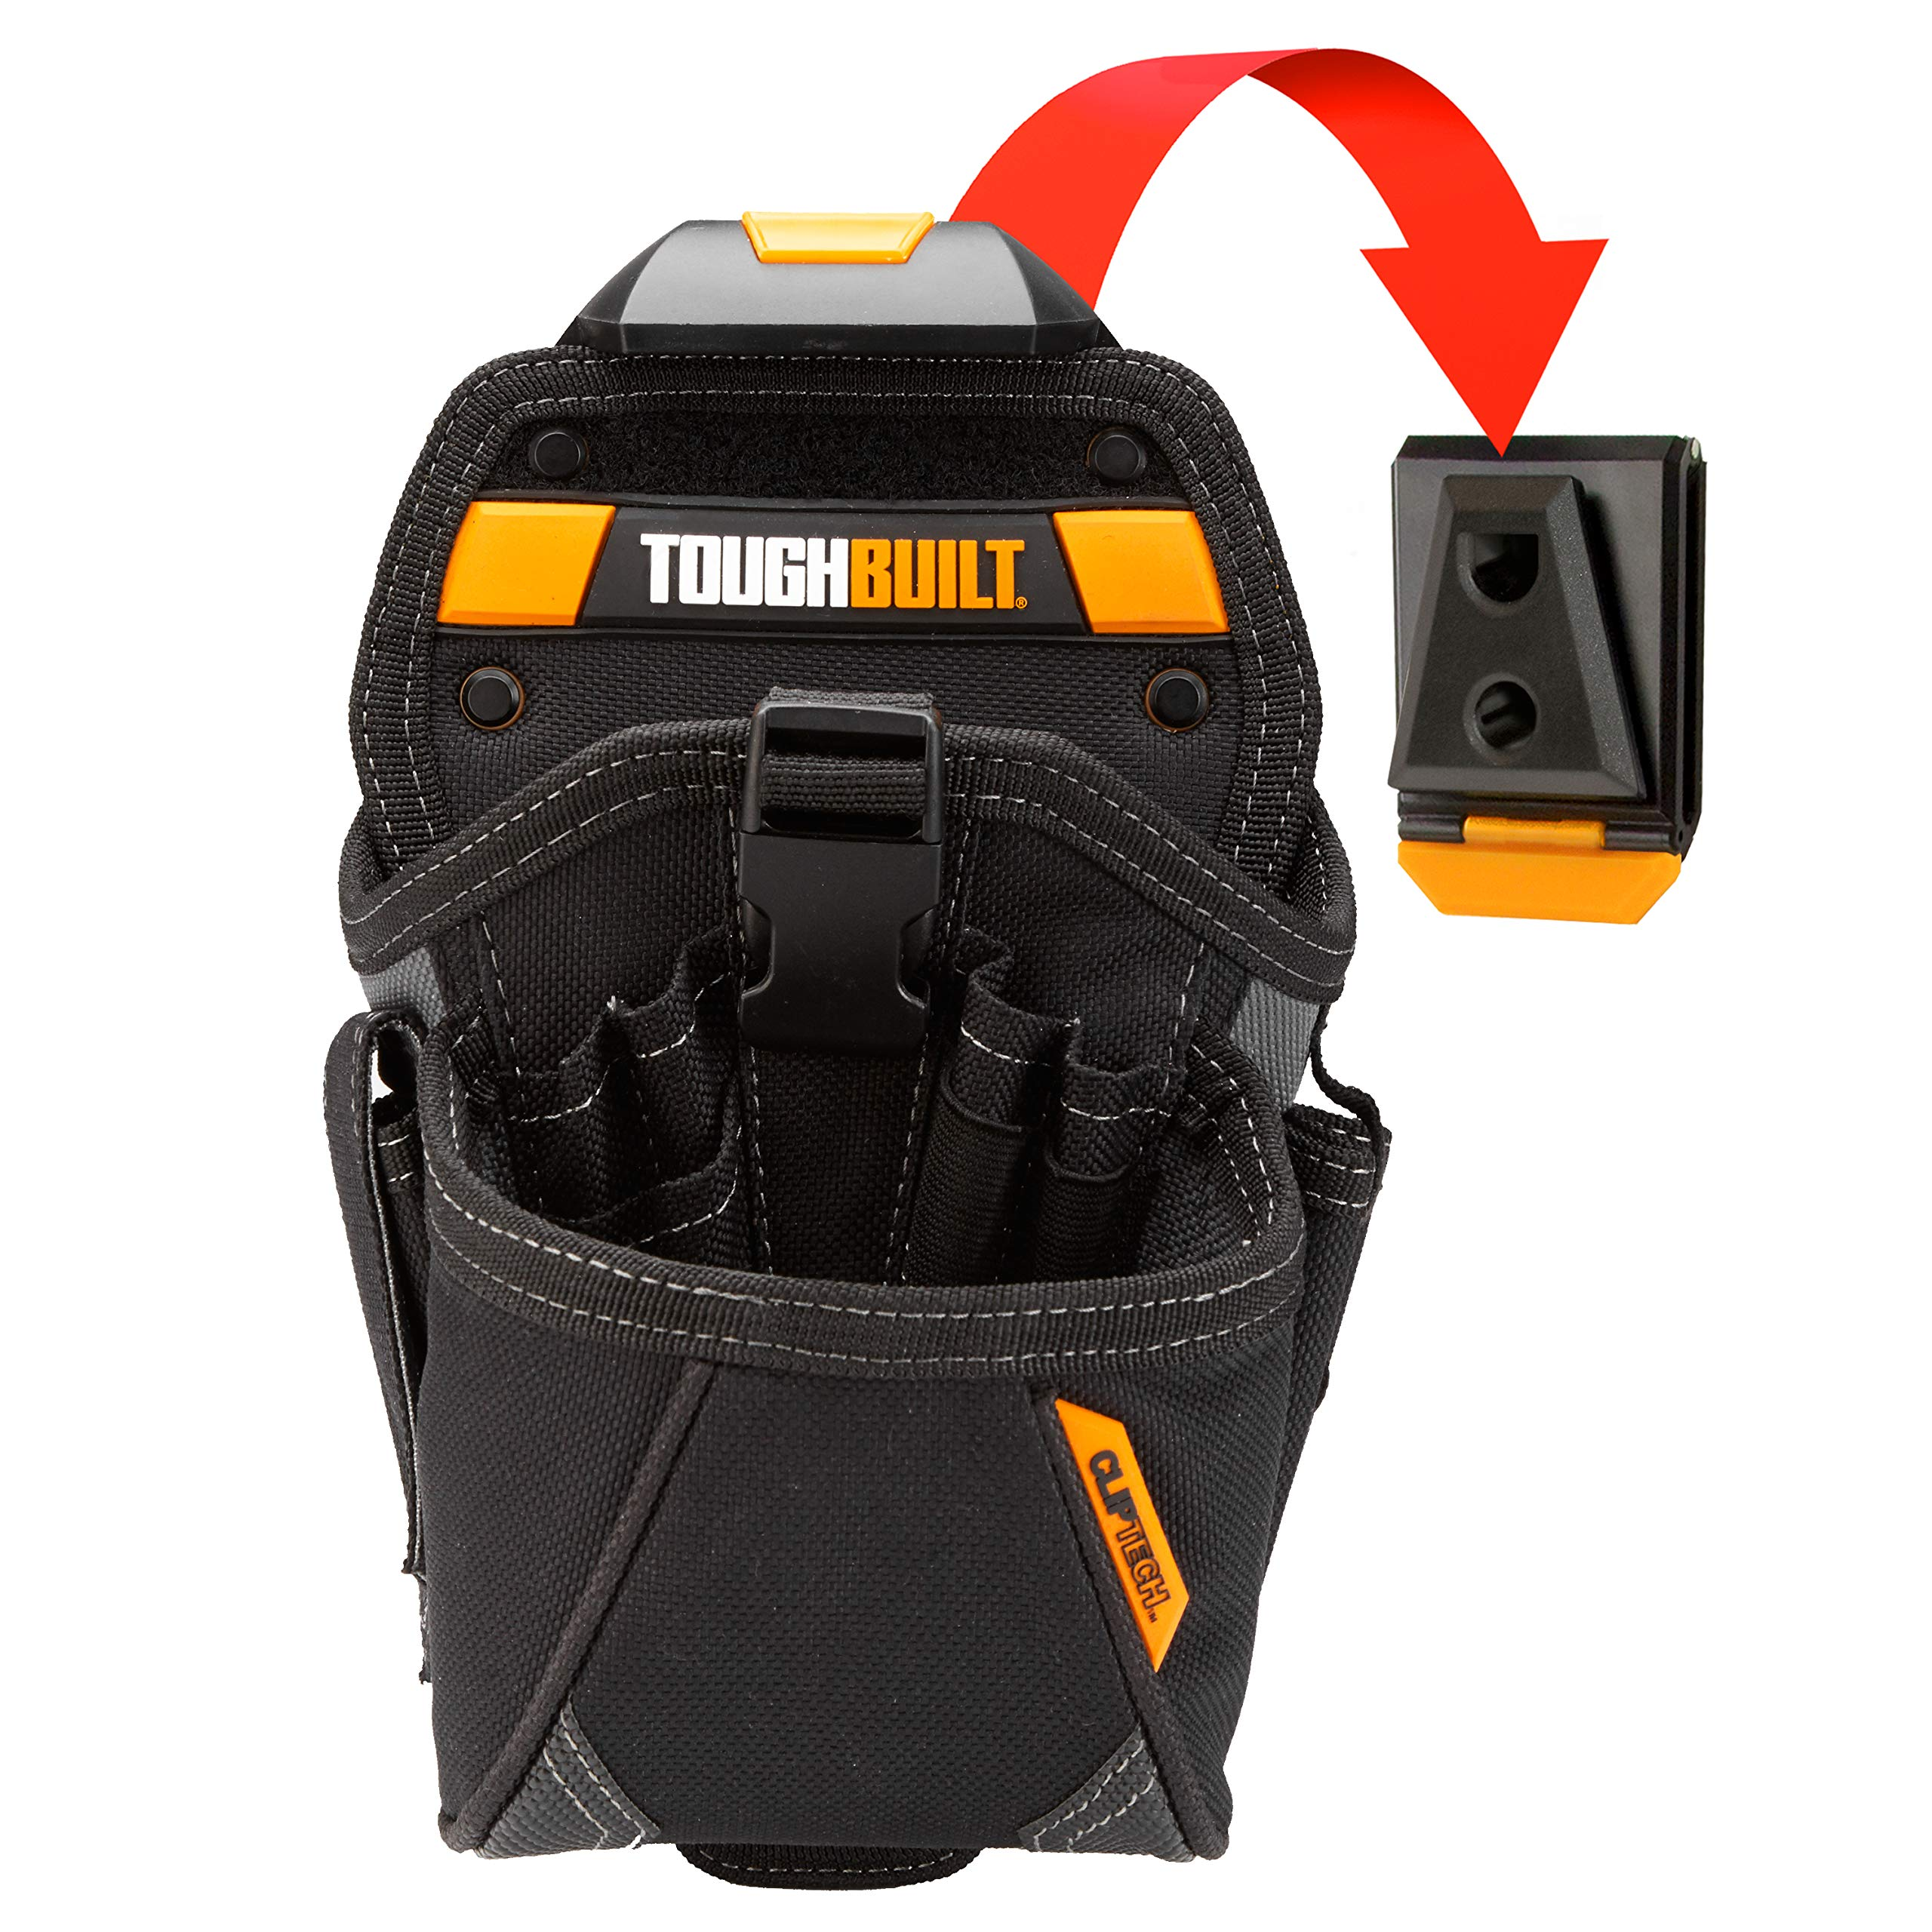 ToughBuilt - Drill Holster Specialist - Covered Accessory Pocket, 15 Pockets, 7 Drill Pockets & 2 Screw Driver Loops, Carabiner Attachments Loops (Patented ClipTech Hub & Work Belts) (TB-CT-20-LX) by ToughBuilt